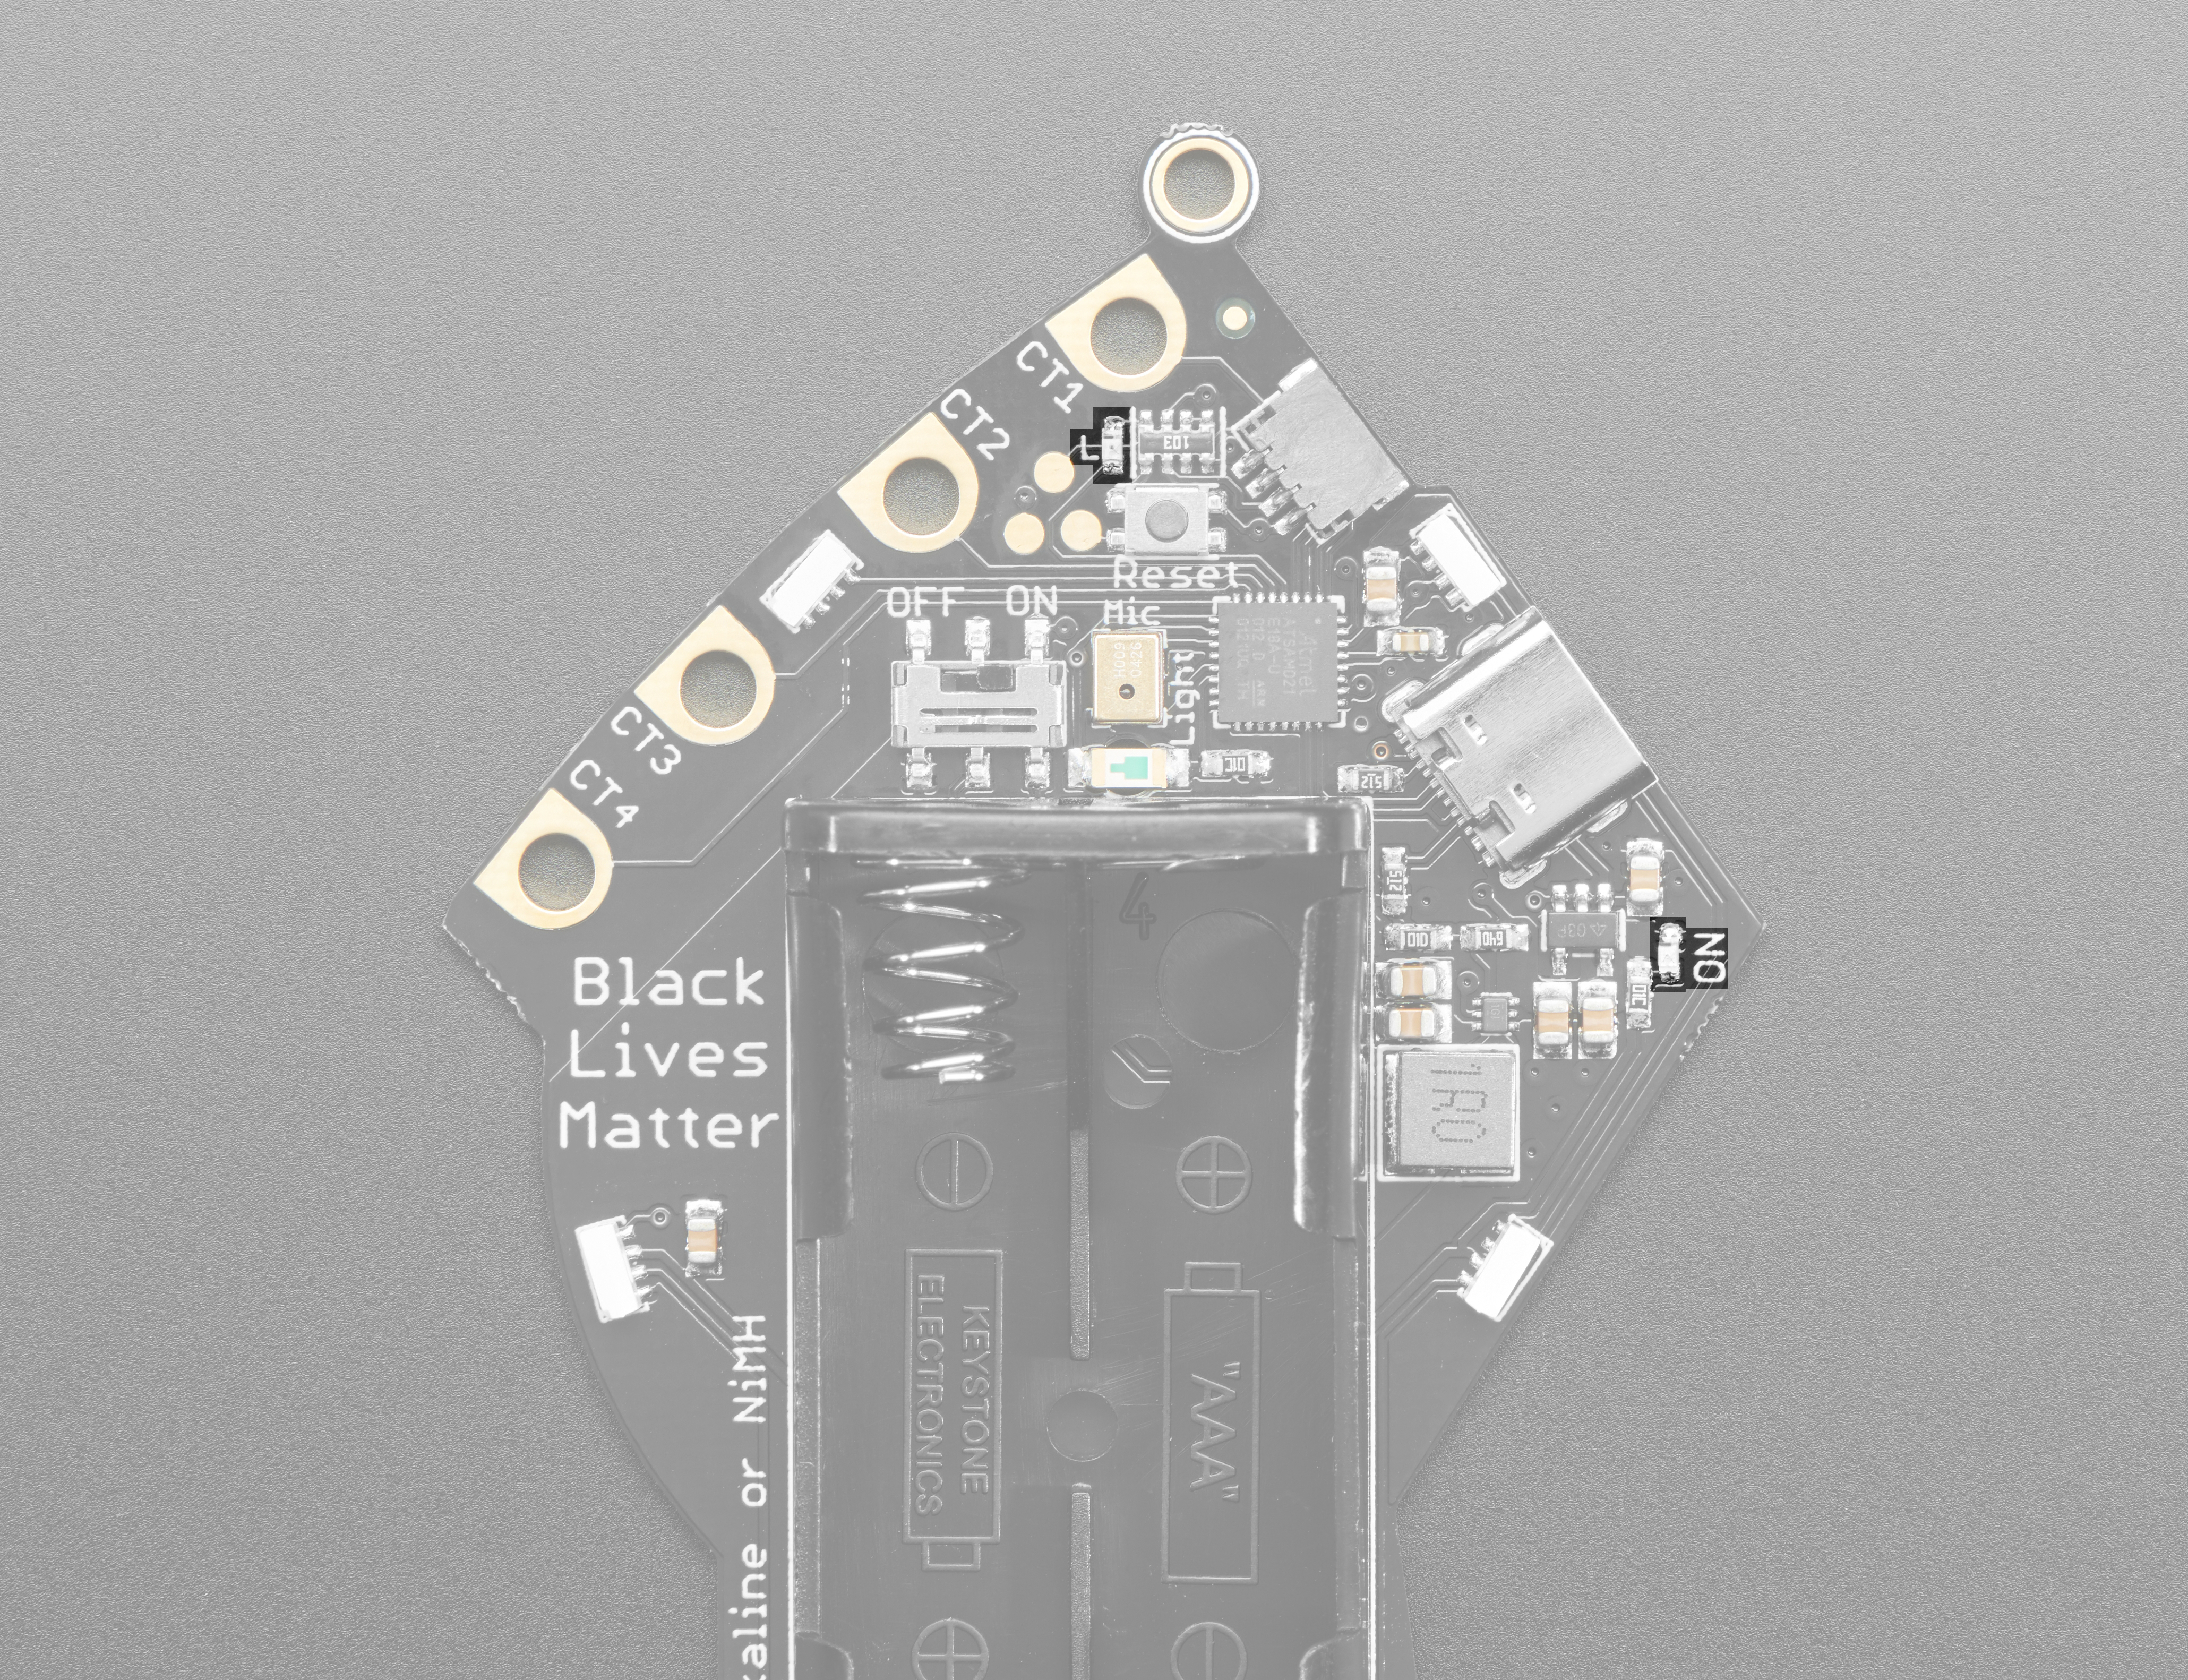 adafruit_products_BLM_pinouts_ON_D13_LEDs.jpg